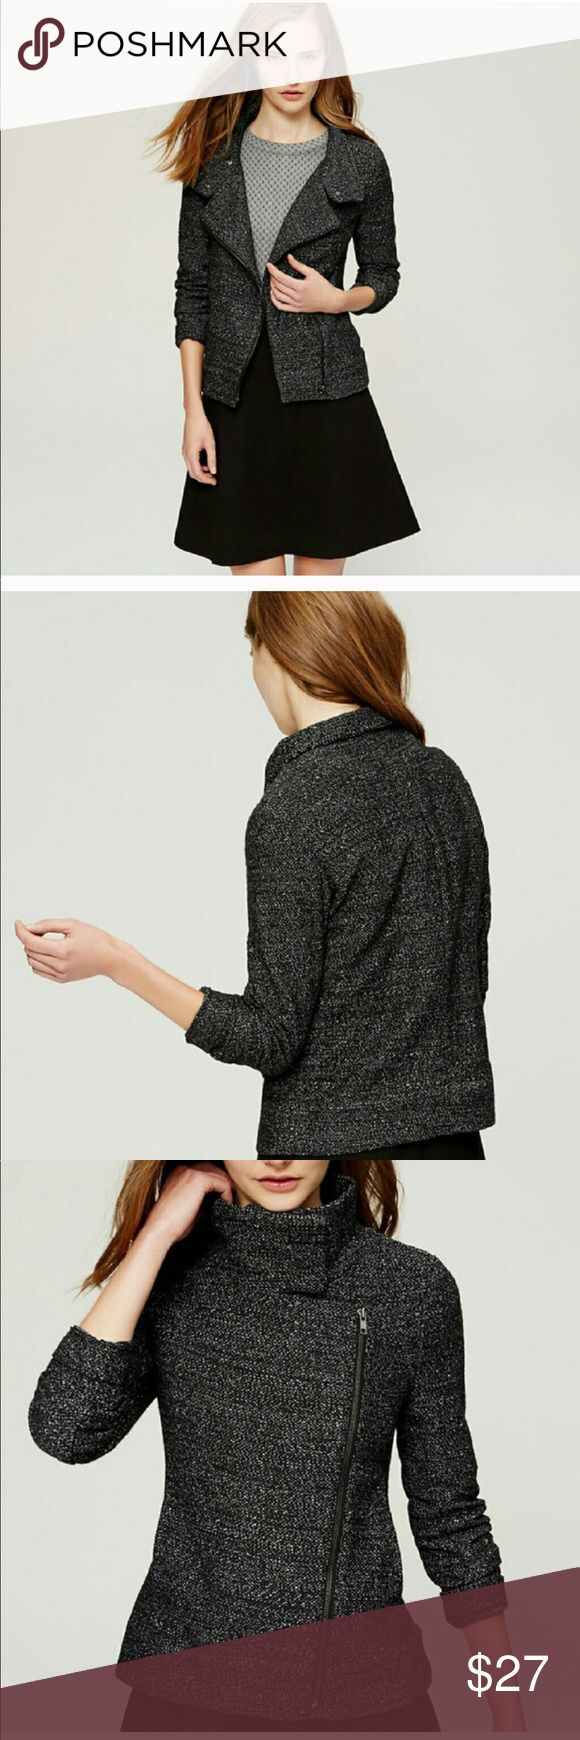 Ann Taylor Loft Marled Moto Jacket Anne Taylor Loft moto jacket size large. Would be great for work or a night out! LOFT Jackets & Coats Blazers